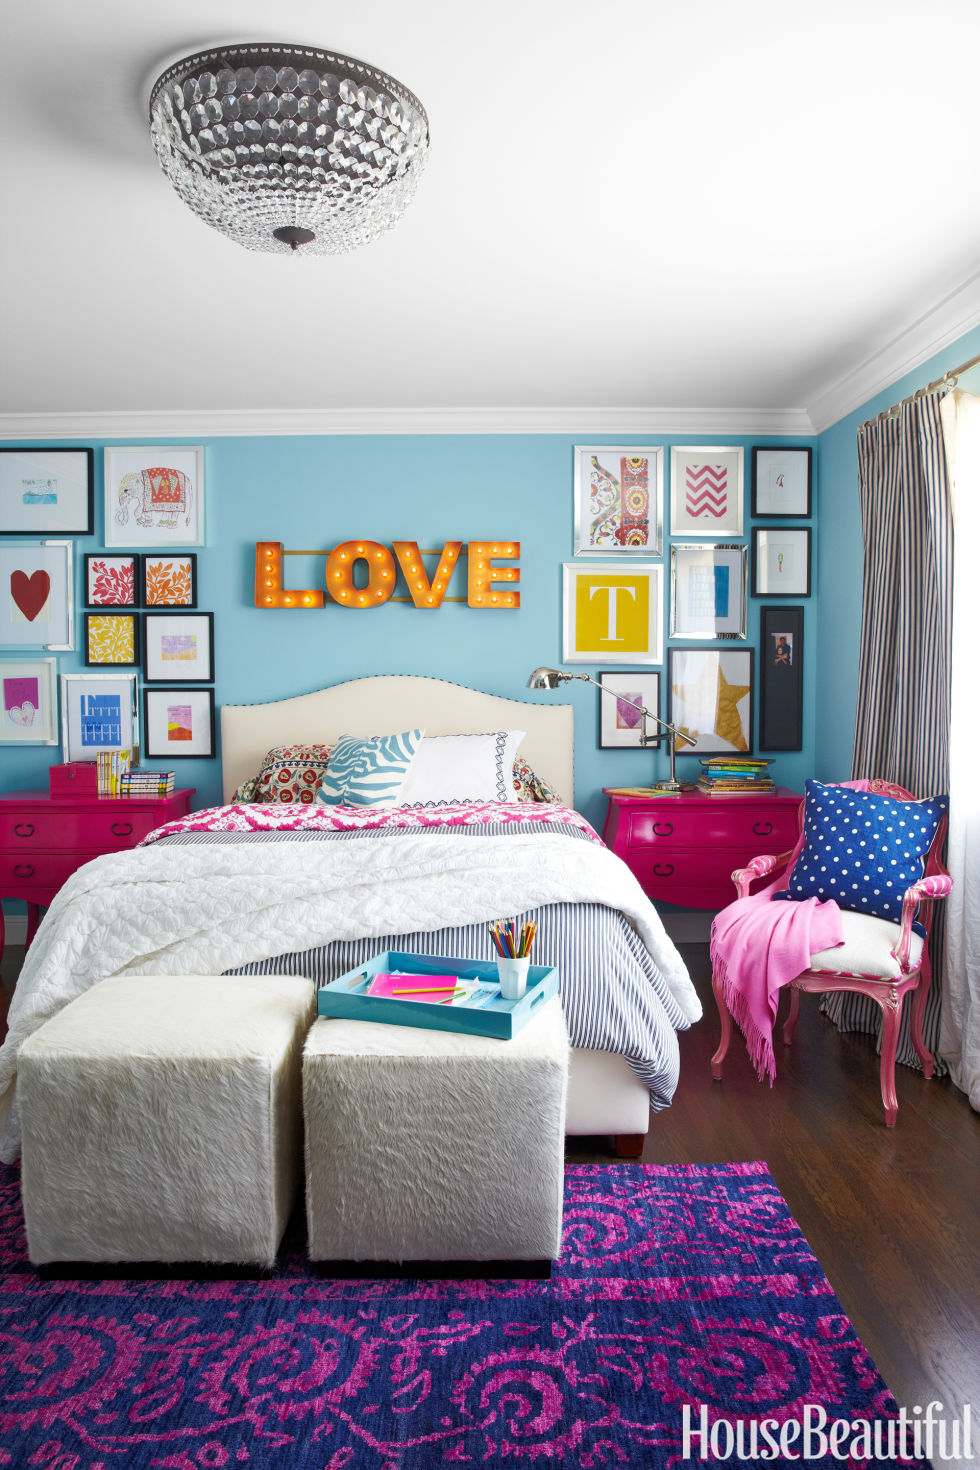 Kids Room Paint Colors Kids Bedroom Colors - Kids bedroom